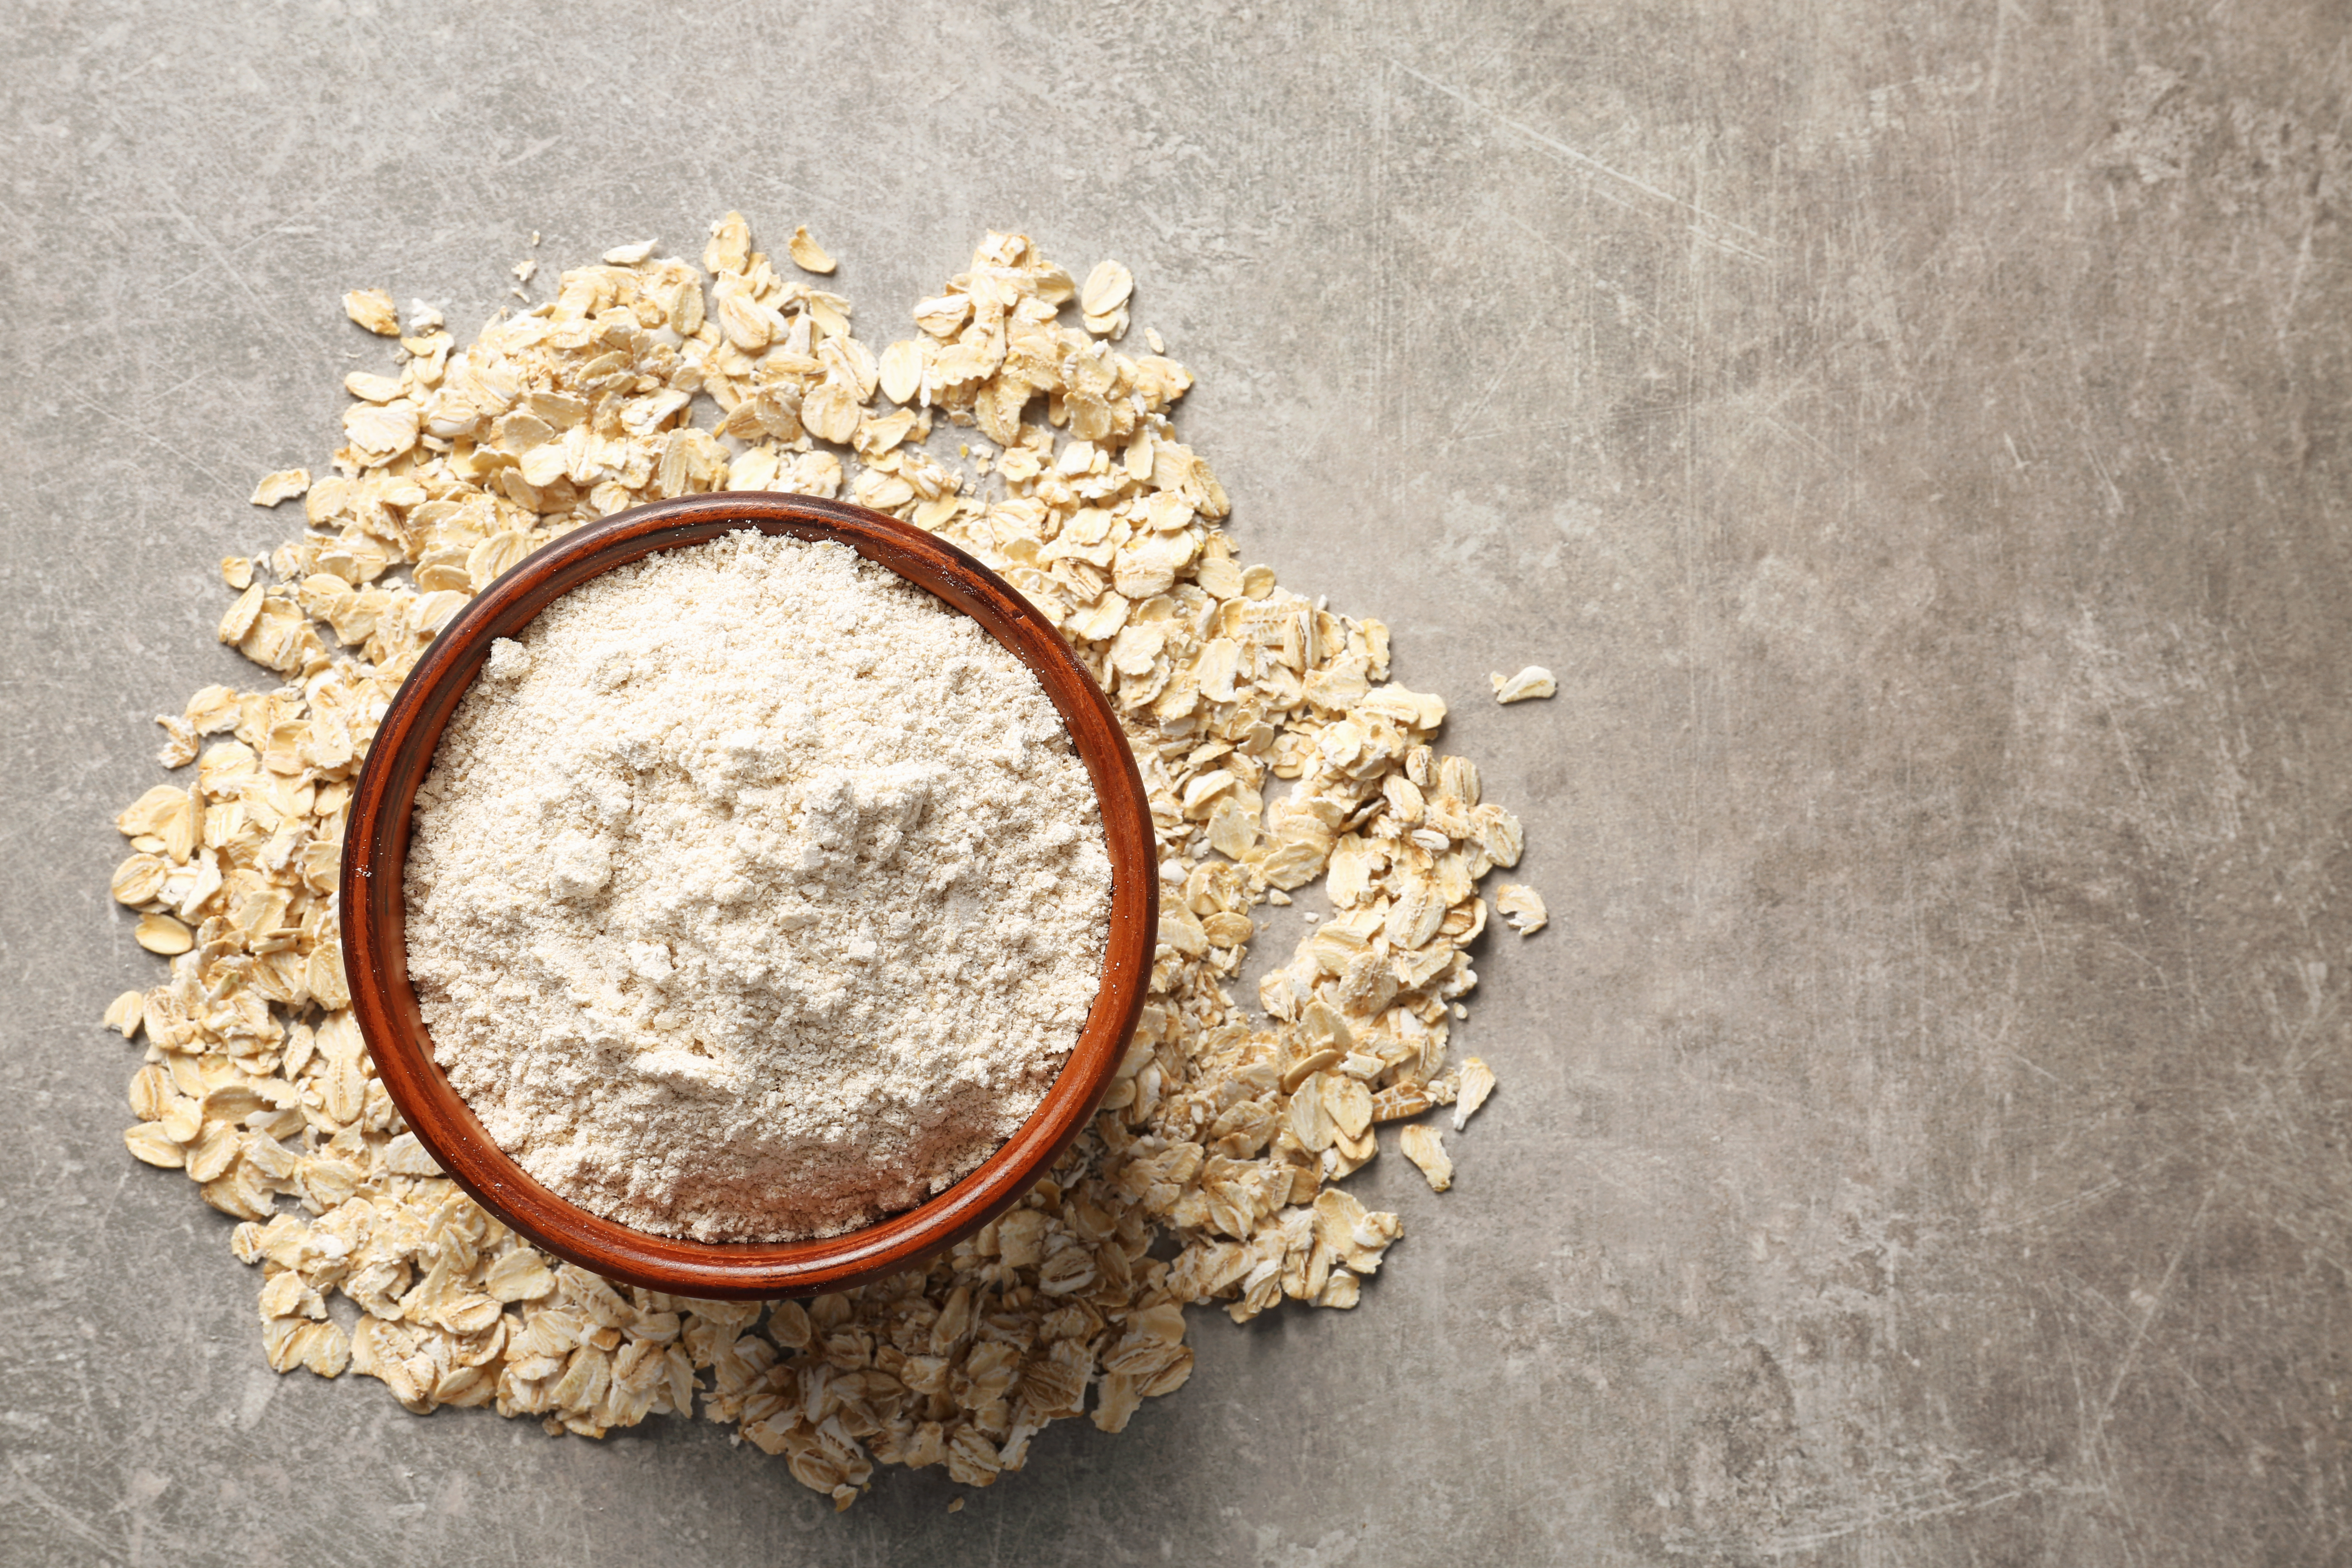 Baking With Oat Flour Benefits Cholesterol and Blood Sugar Levels